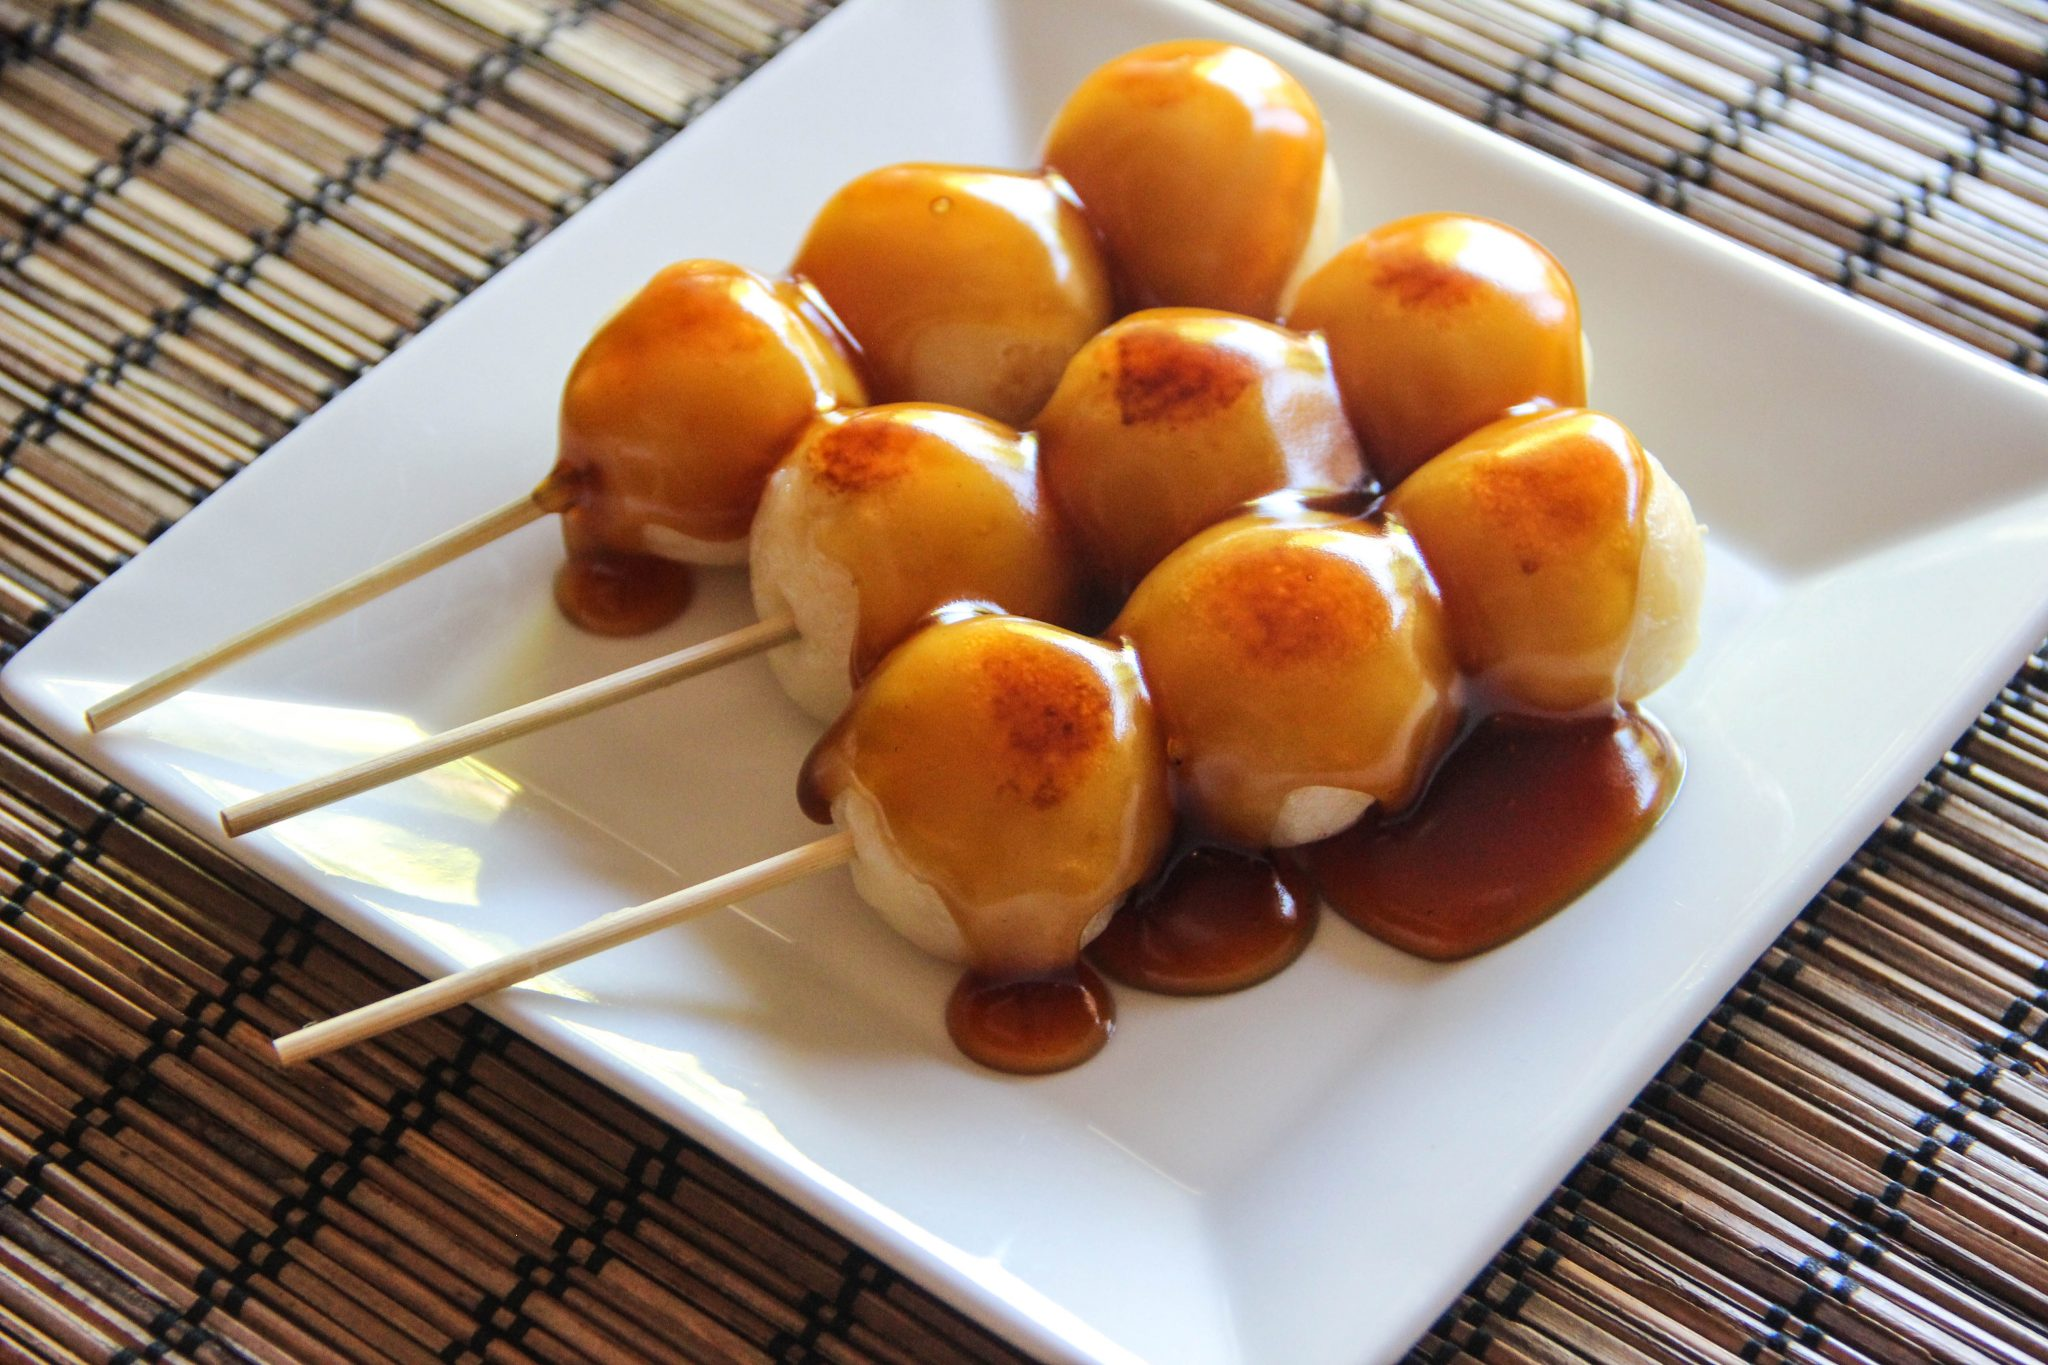 Famous Anime Wallpaper Mitarashi Dango Recipe Japanese Cooking 101